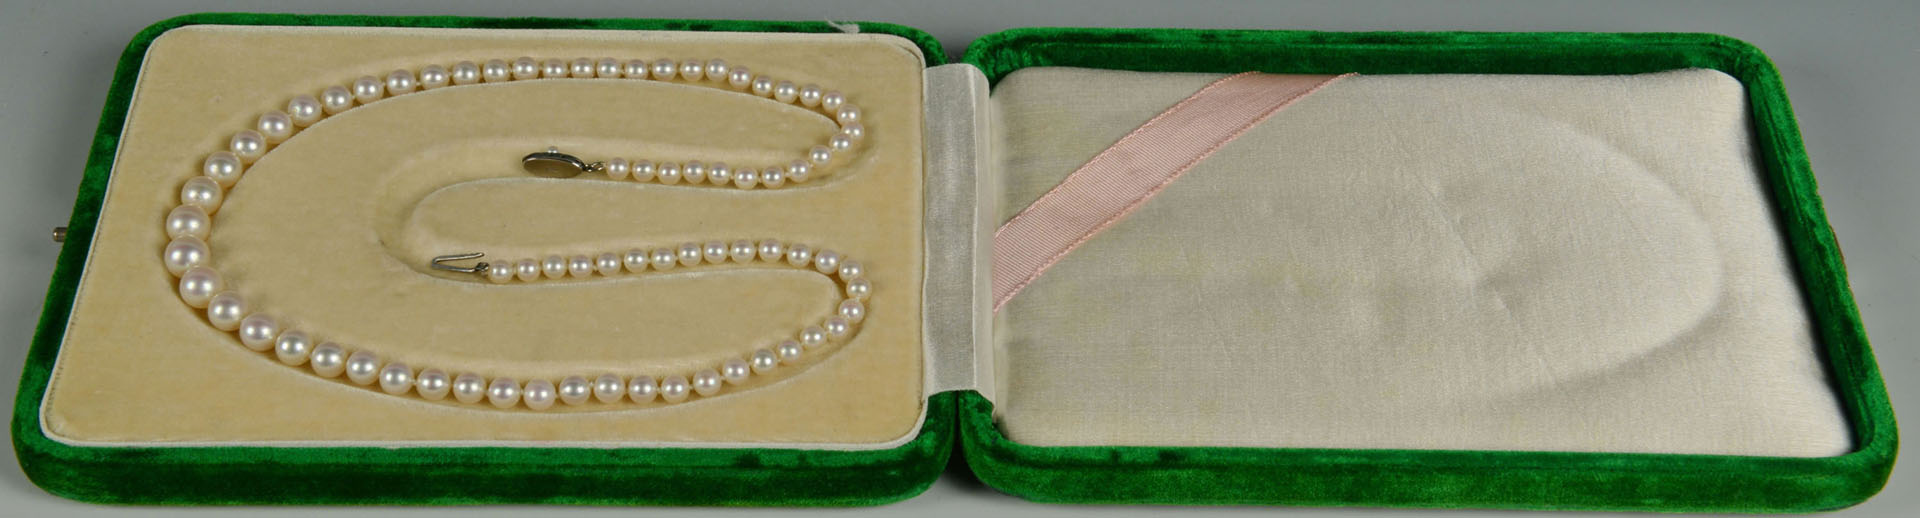 4 pcs Ladies Jewelry inc. gold watches & pearls